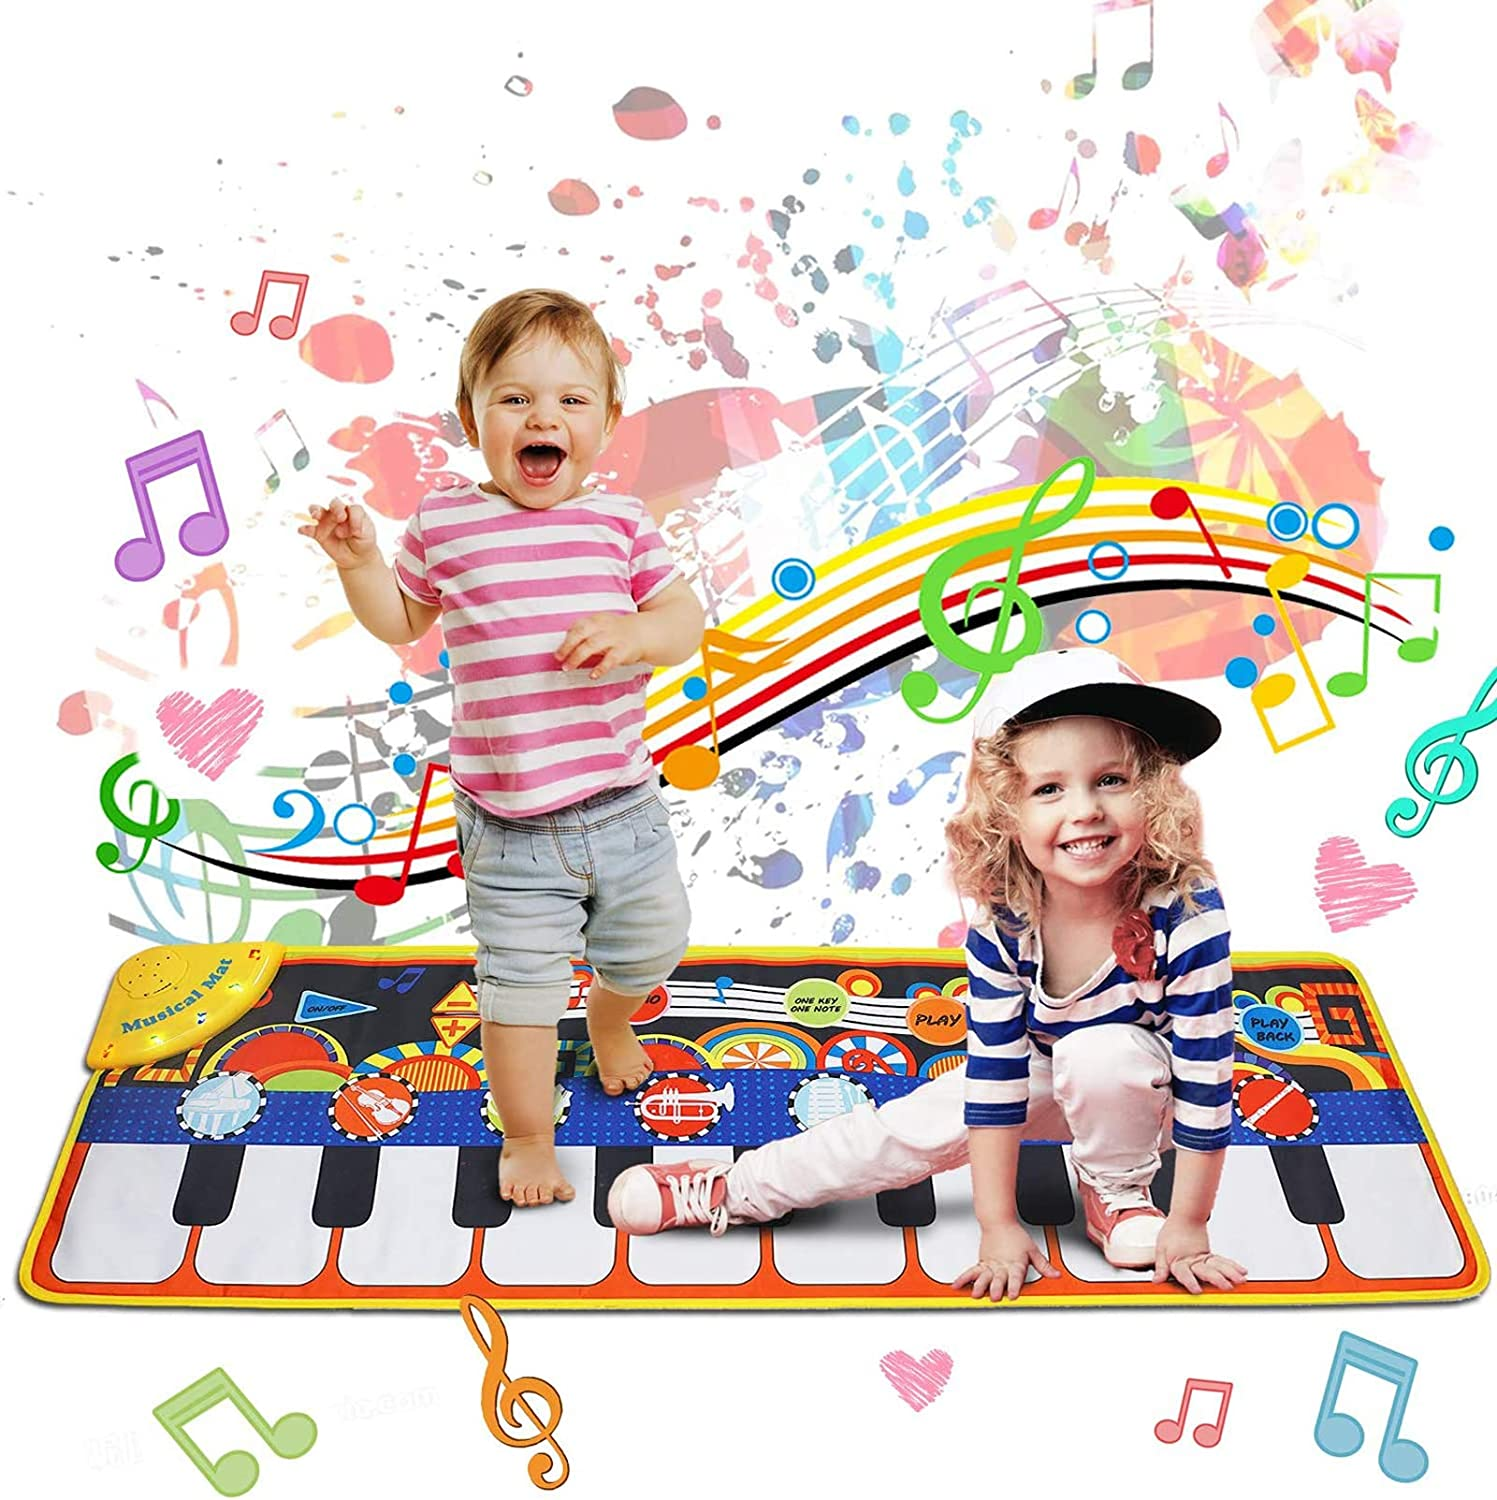 "Music Mat Toy for Kids Toddlers Age 3-8 Years Old, 19 Piano Key Playmat Touch Play Game Dance Blanket Carpet Mat with Record, Playback, Demo, Adjustable Vol, Educational Toys for Girls Boys, 43""X14"": Toys & Games"